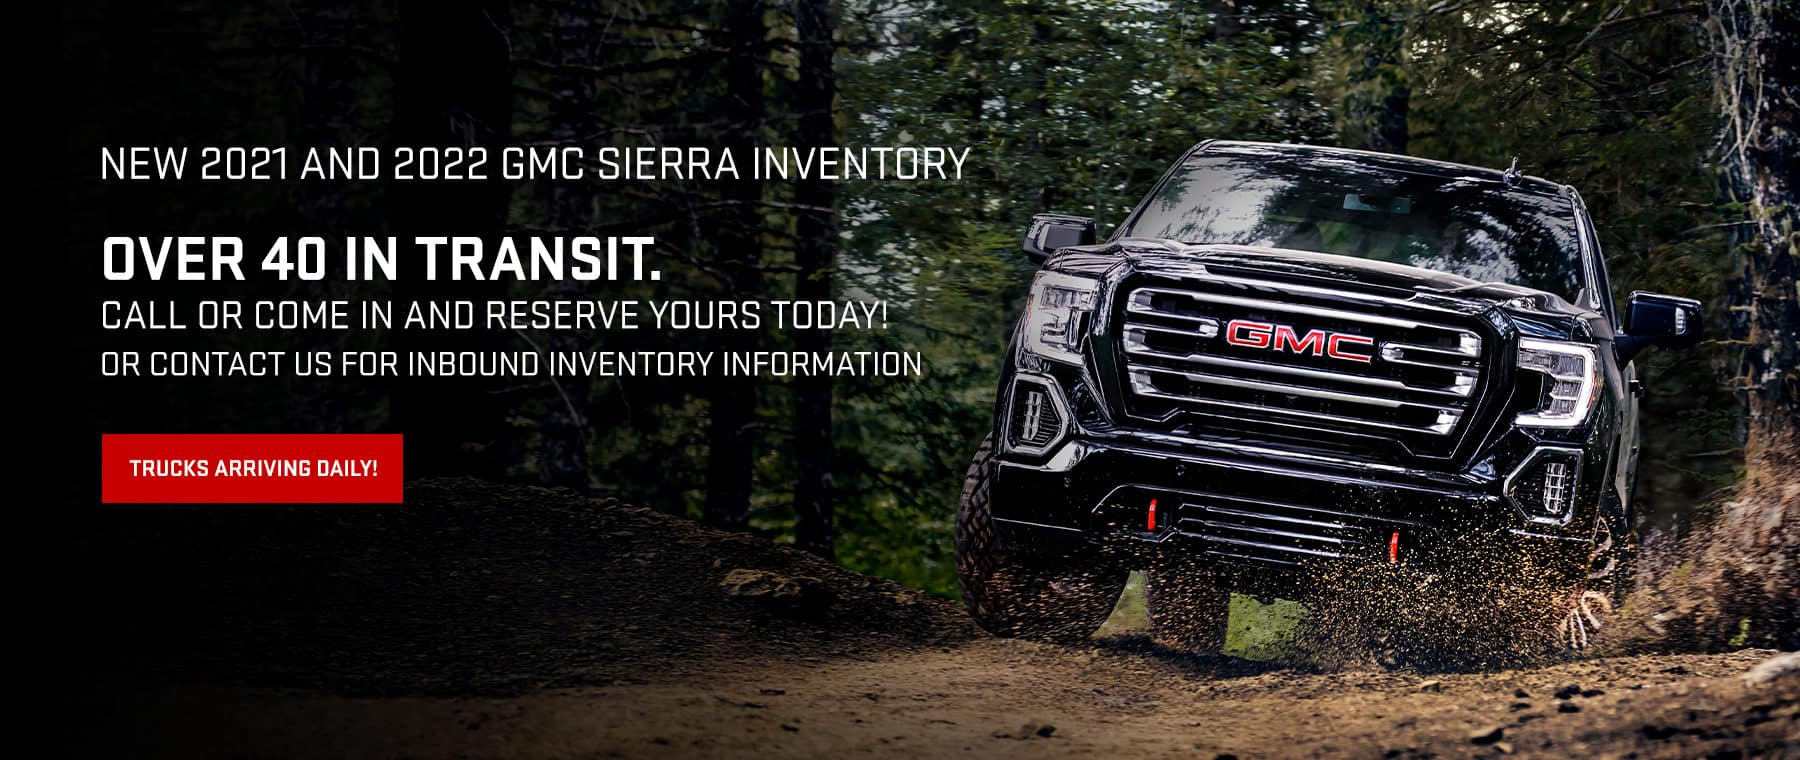 New 2021 and 2022 GMC Sierra Inventory